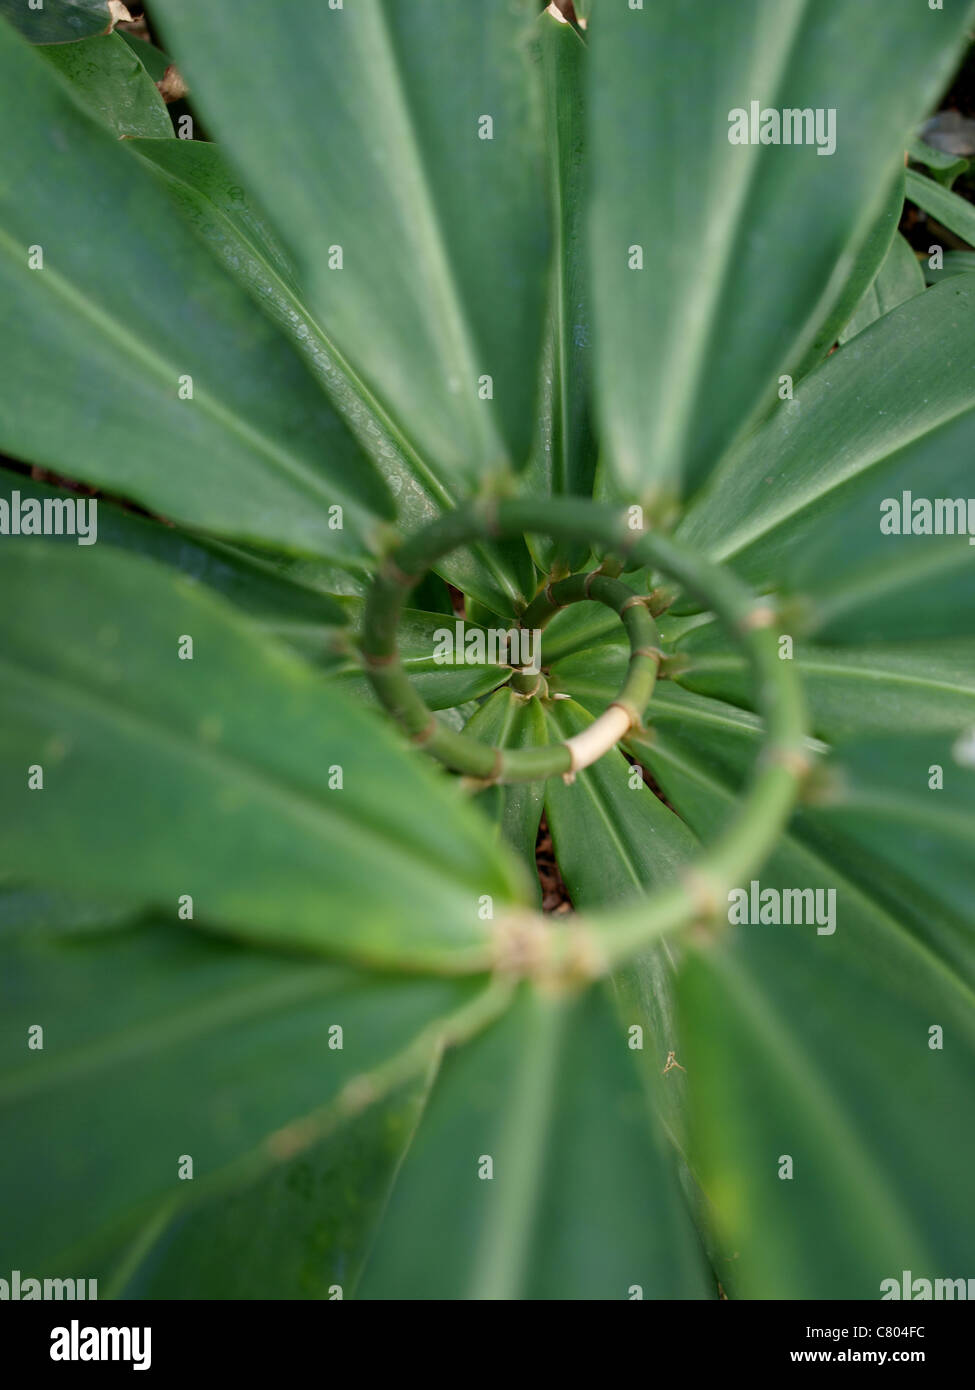 Spiral plant - Stock Image